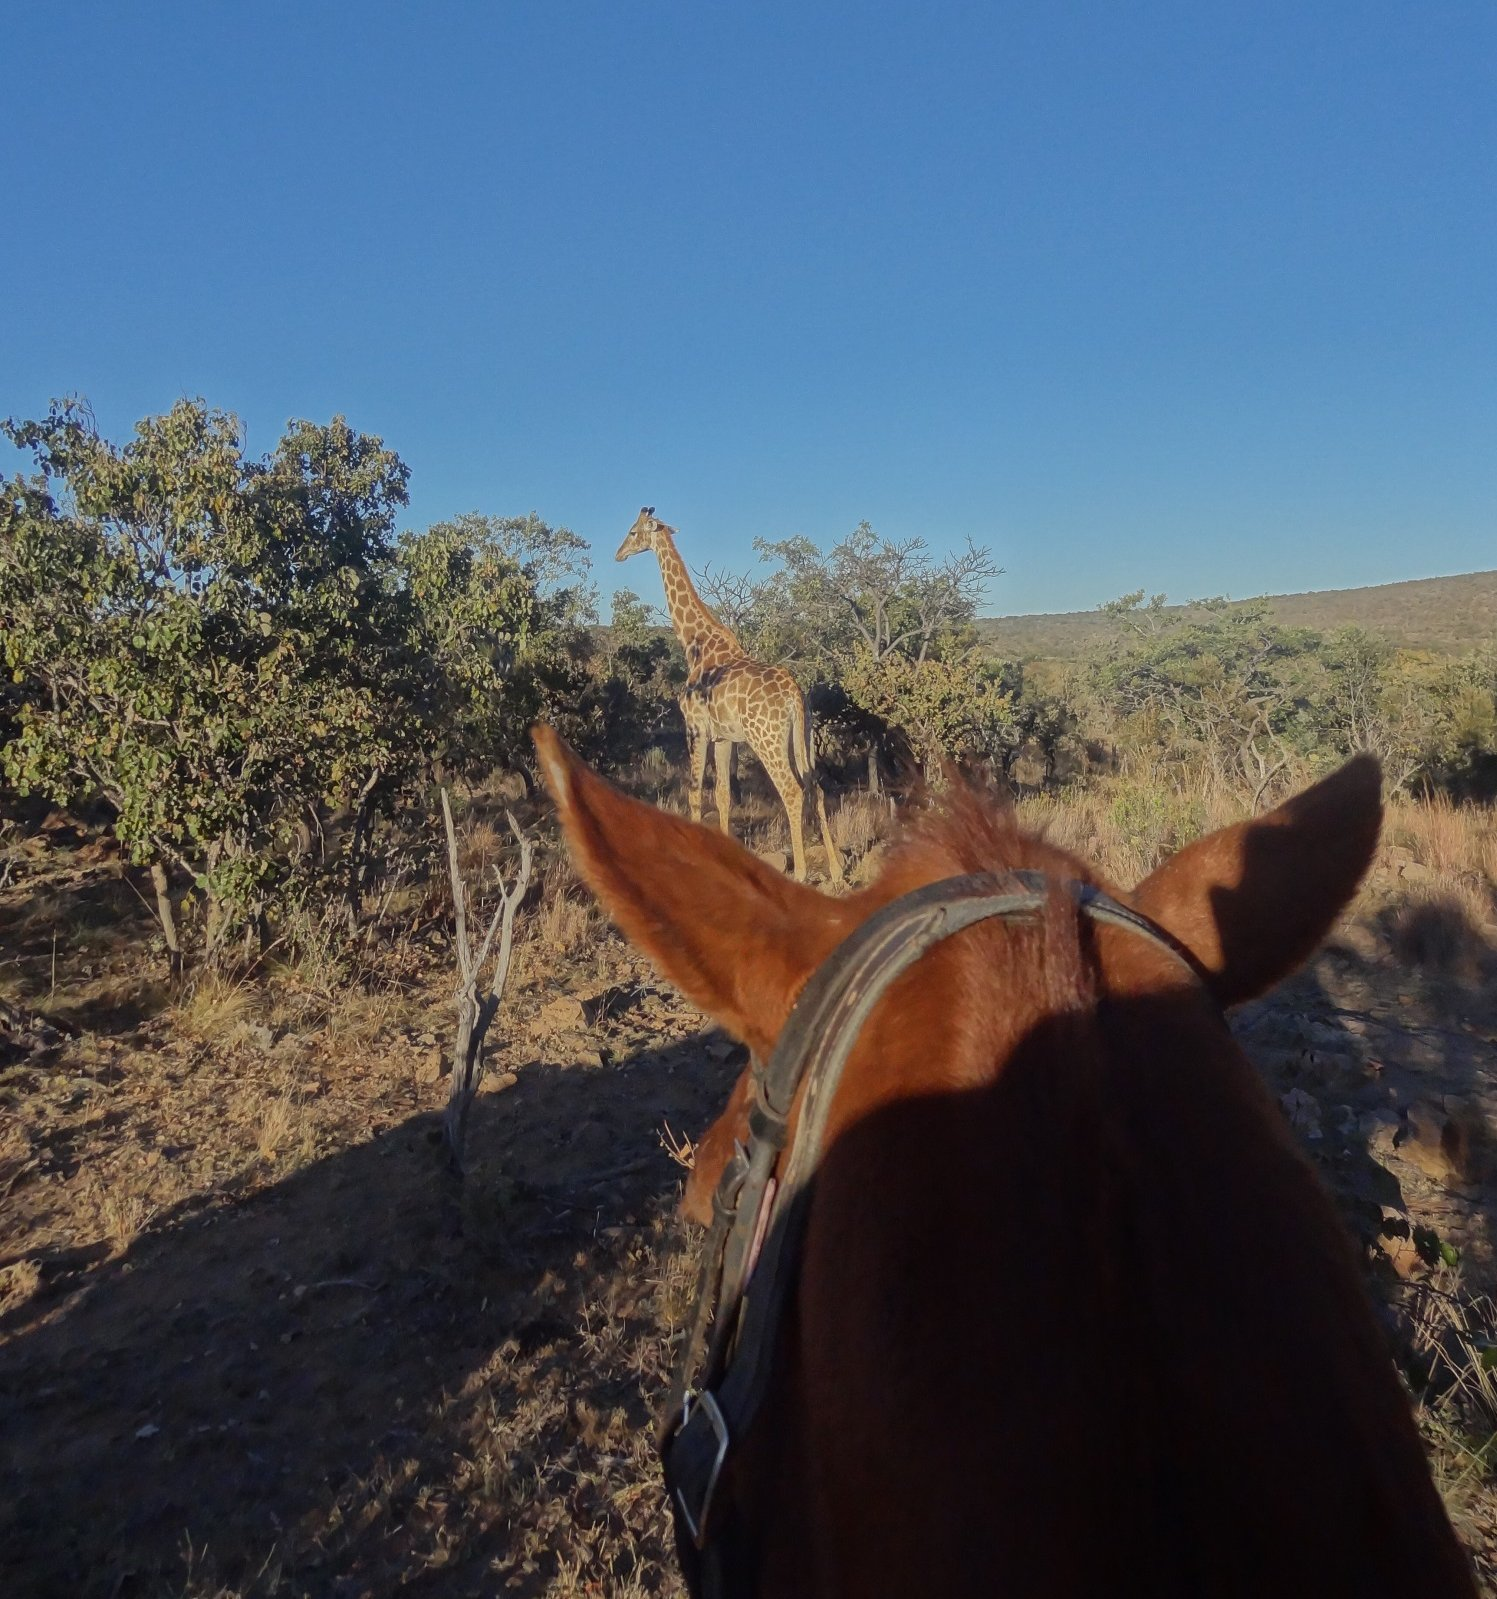 , A Rare Opportunity To Assist With Safari Conservation, In The Saddle